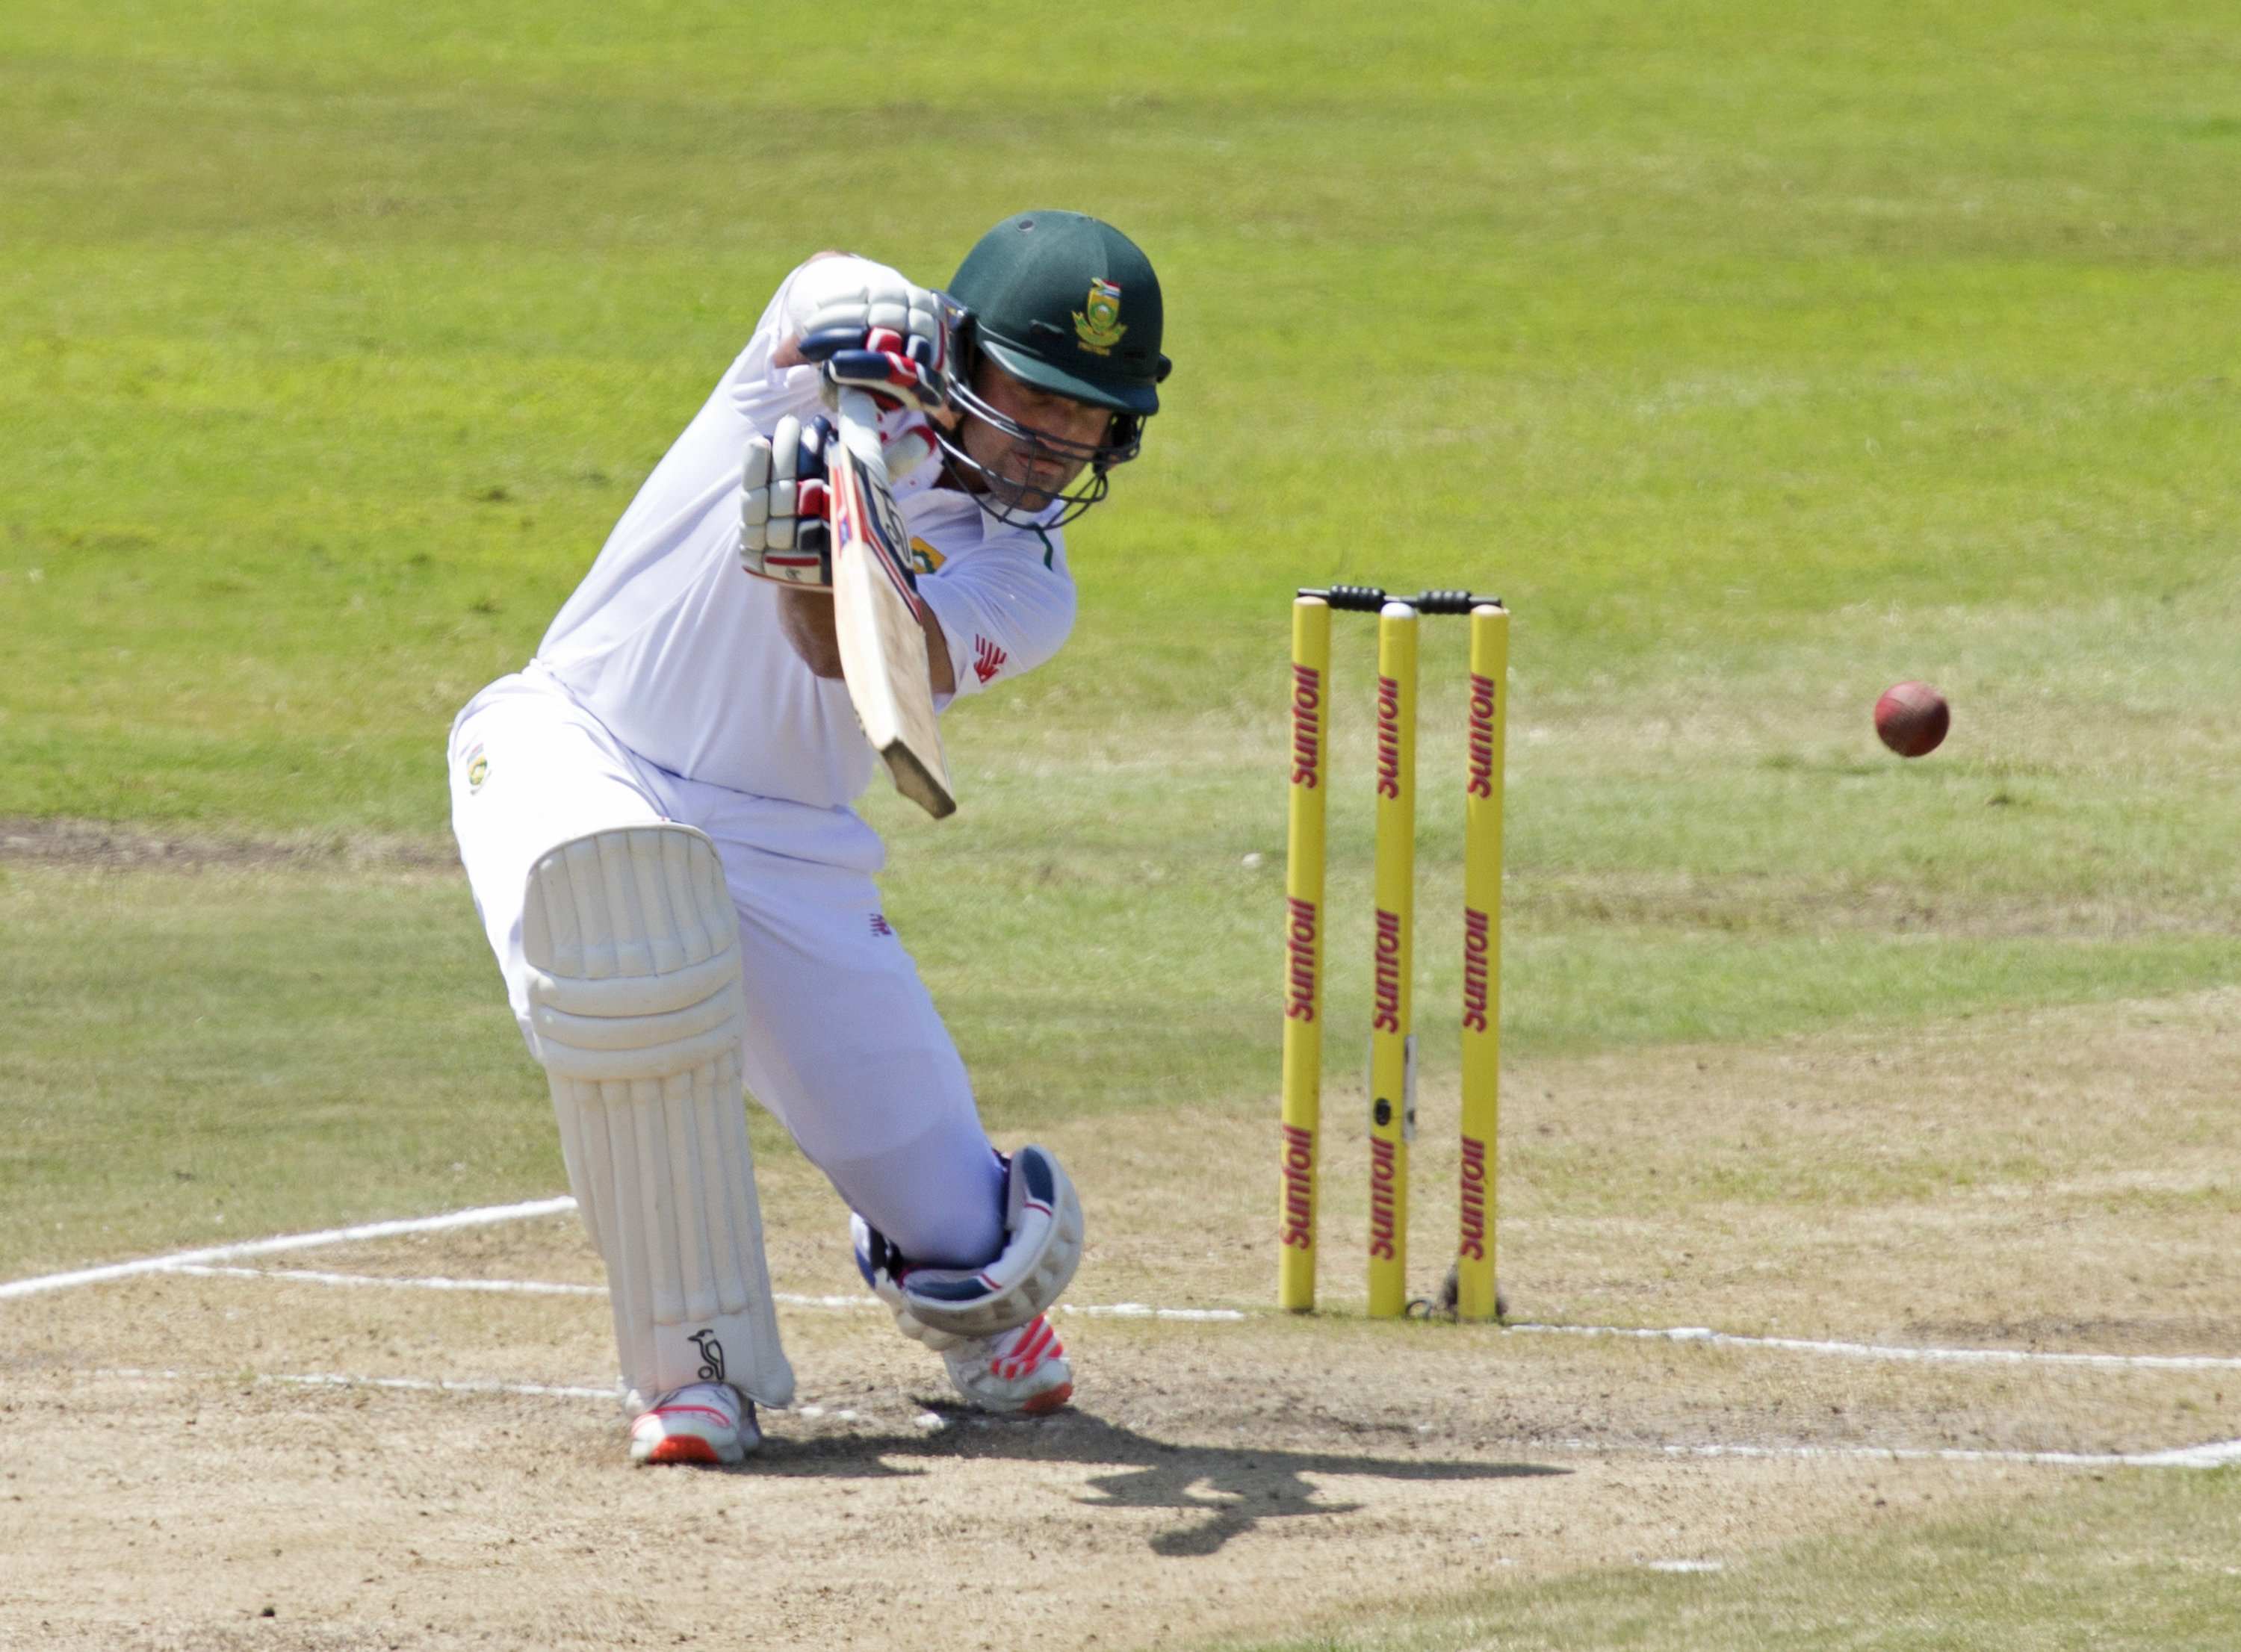 South Africa's Dean Elgar plays a shot during the first cricket test match against England in Durban, South Africa, December 28, 2015. Photo: Reuters